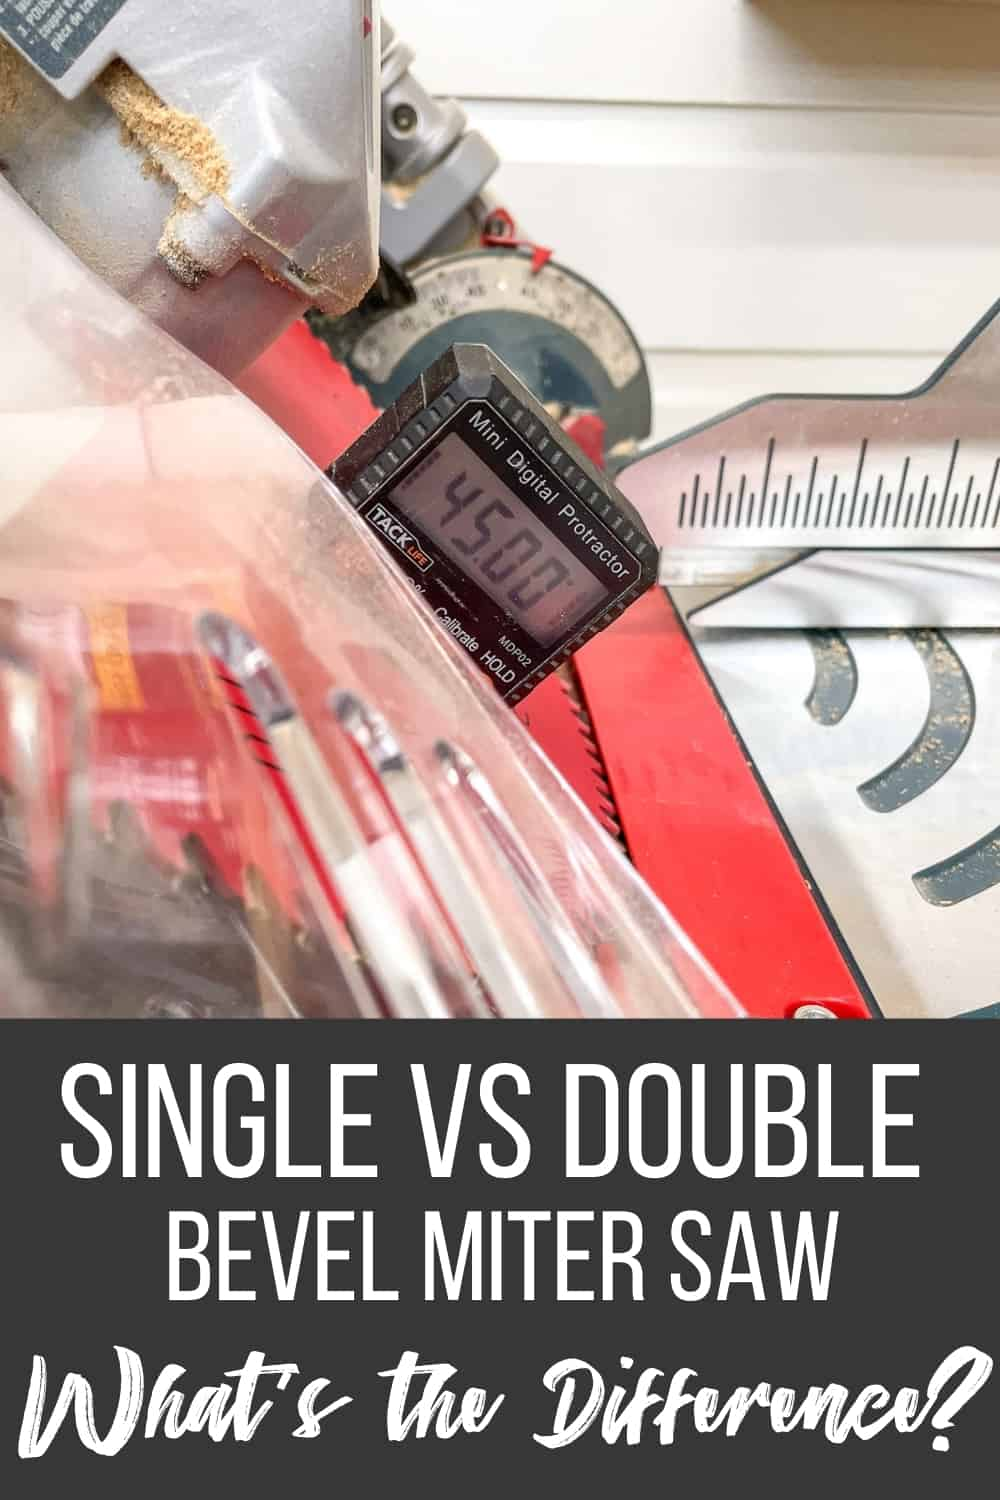 what's the difference between a single vs double bevel miter saw?